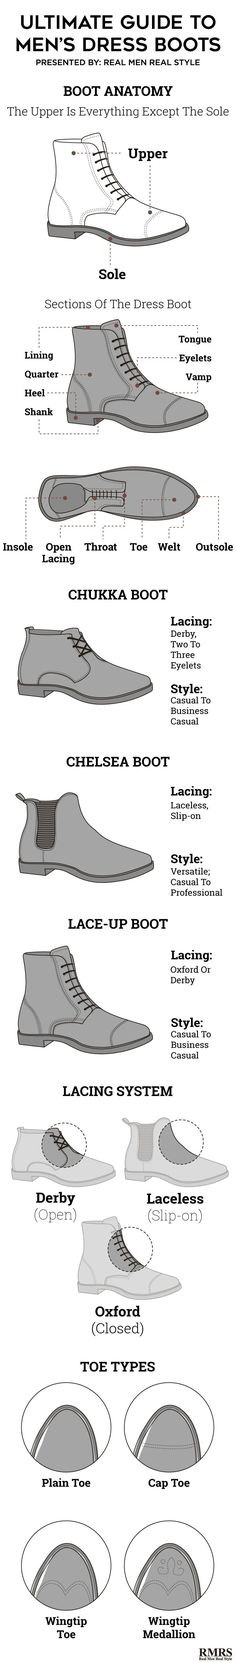 Fashion infographic & data visualisation Ultimate Guide To Dress Boots For Men Infographic Infographic Description Ultimate Guide To Dress Boots For Men – Infographic Source – Mens Boots Fashion, Mens Fashion Blog, Best Mens Fashion, Men's Fashion, Fashion Ideas, Fashion Design, Real Men Real Style, Real Man, Fashion Infographic